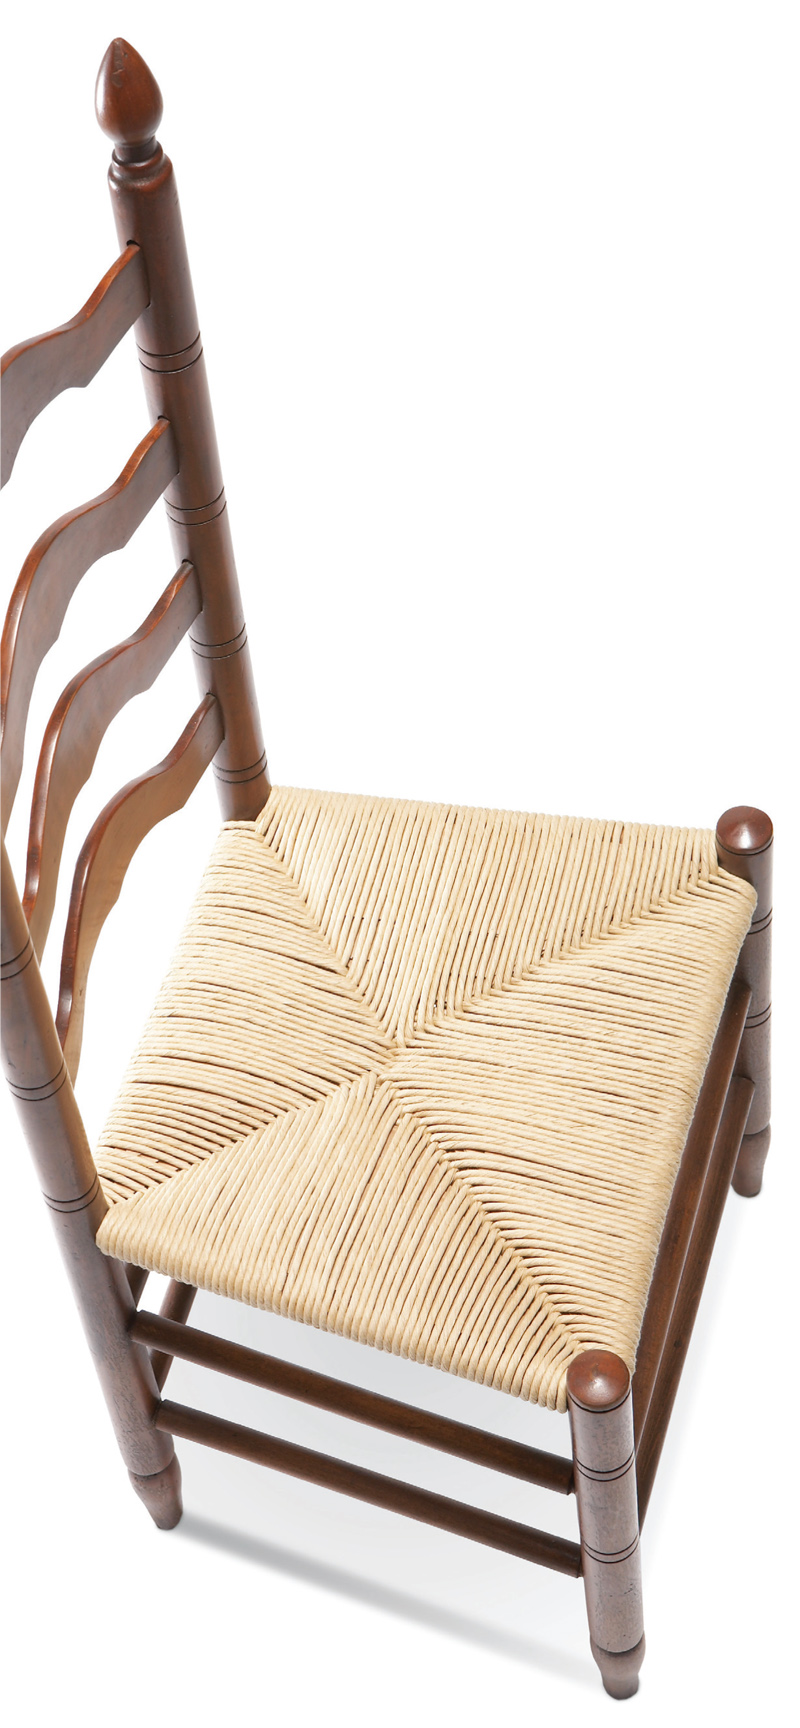 Rush Seats Are Installed By Wrapping Twisted Strands Of Fiber Around Each  Corner Of A Chair In A Continuous Loop.